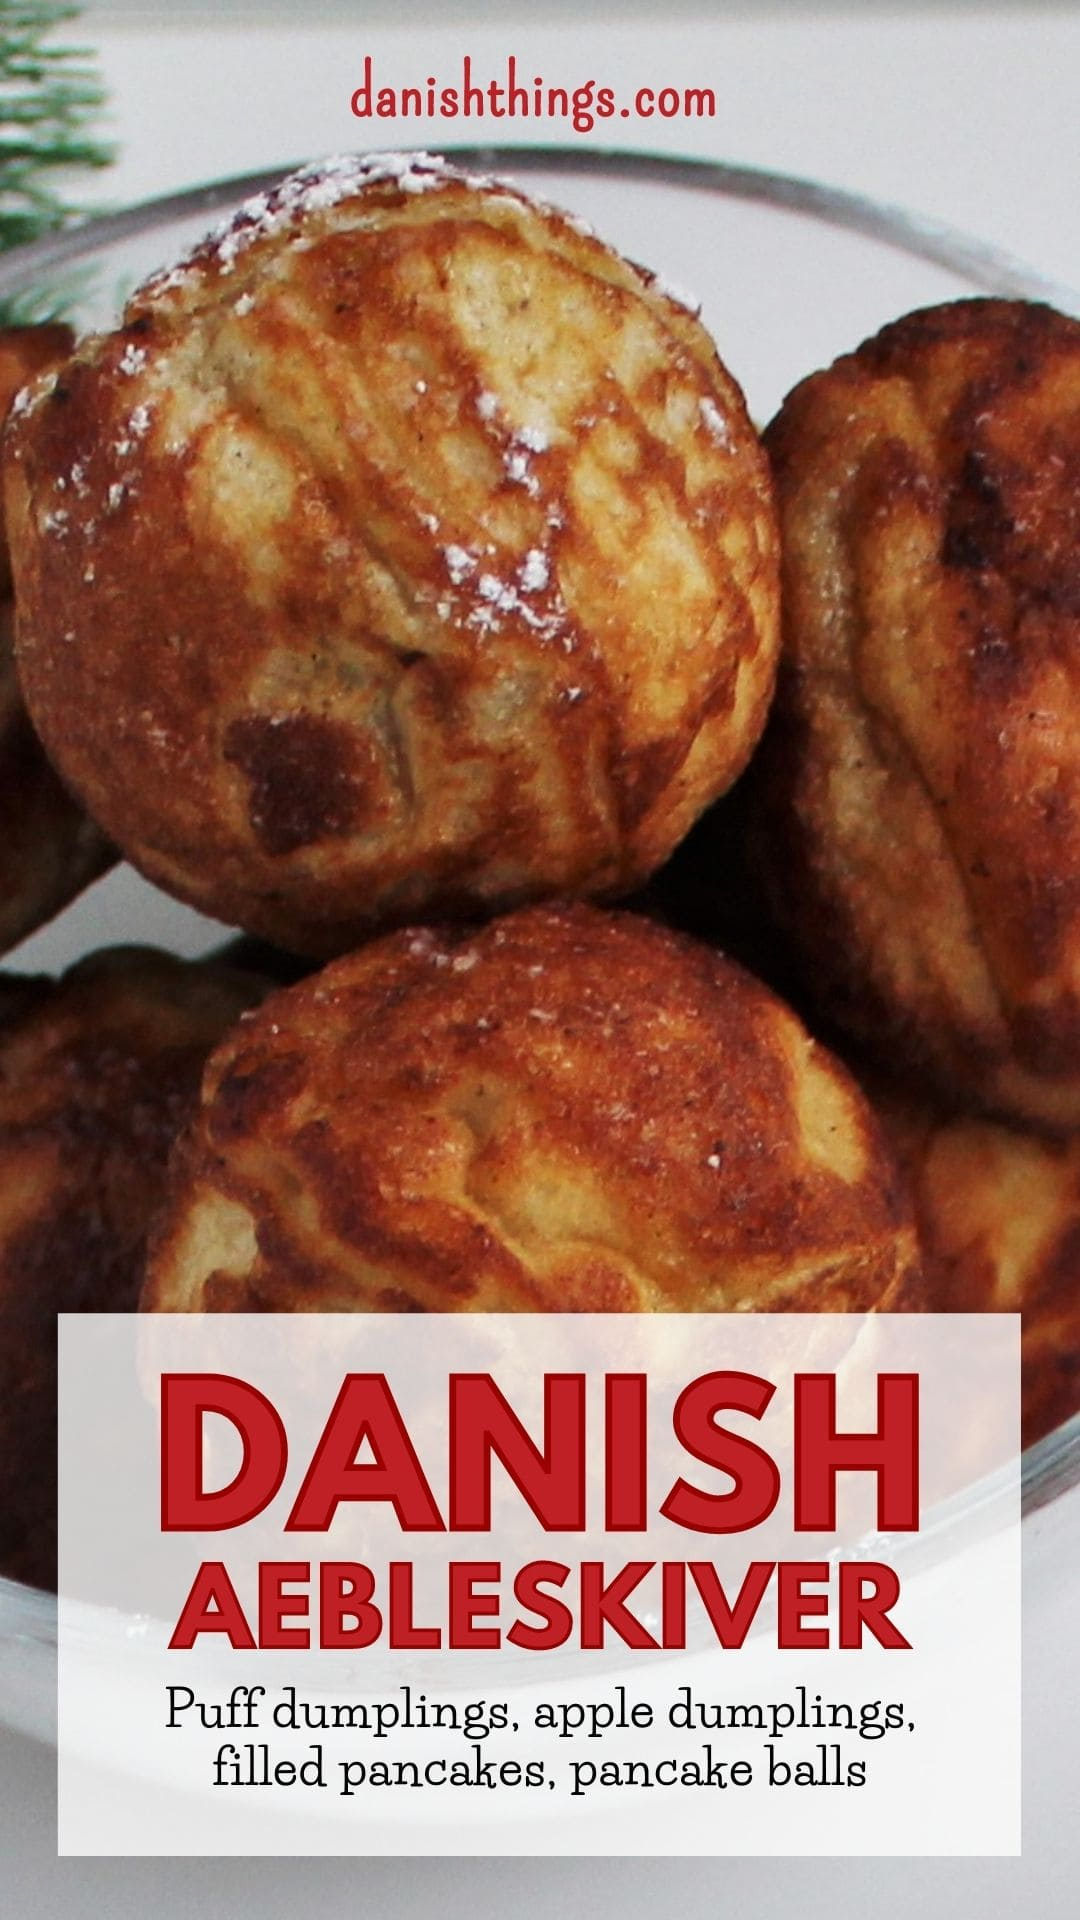 Aebleskiver - Puff dumplings - Apple dumplings - Filled pancakes - Pancake balls – in Danish æbleskiver. The most delicious filled aebleskiver. Danes eat them at Christmastime – you can eat them whenever you like. Fill your aebleskiver with apple compote, jam, marmalade or with extra batter and have nice round aebleskiver. Eat them as they are or serve them with sugar and marmalade. Find the recipe and inspiration for your Danish inspired Christmas @ danishthings.com #DanishThings # Aebleskiver #Puff-dumplings #Apple-dumplings #Filled-pancakes #Pancake-balls #round #pancakes #sweet #dumpling #Danish #æbleskiver #Christmas